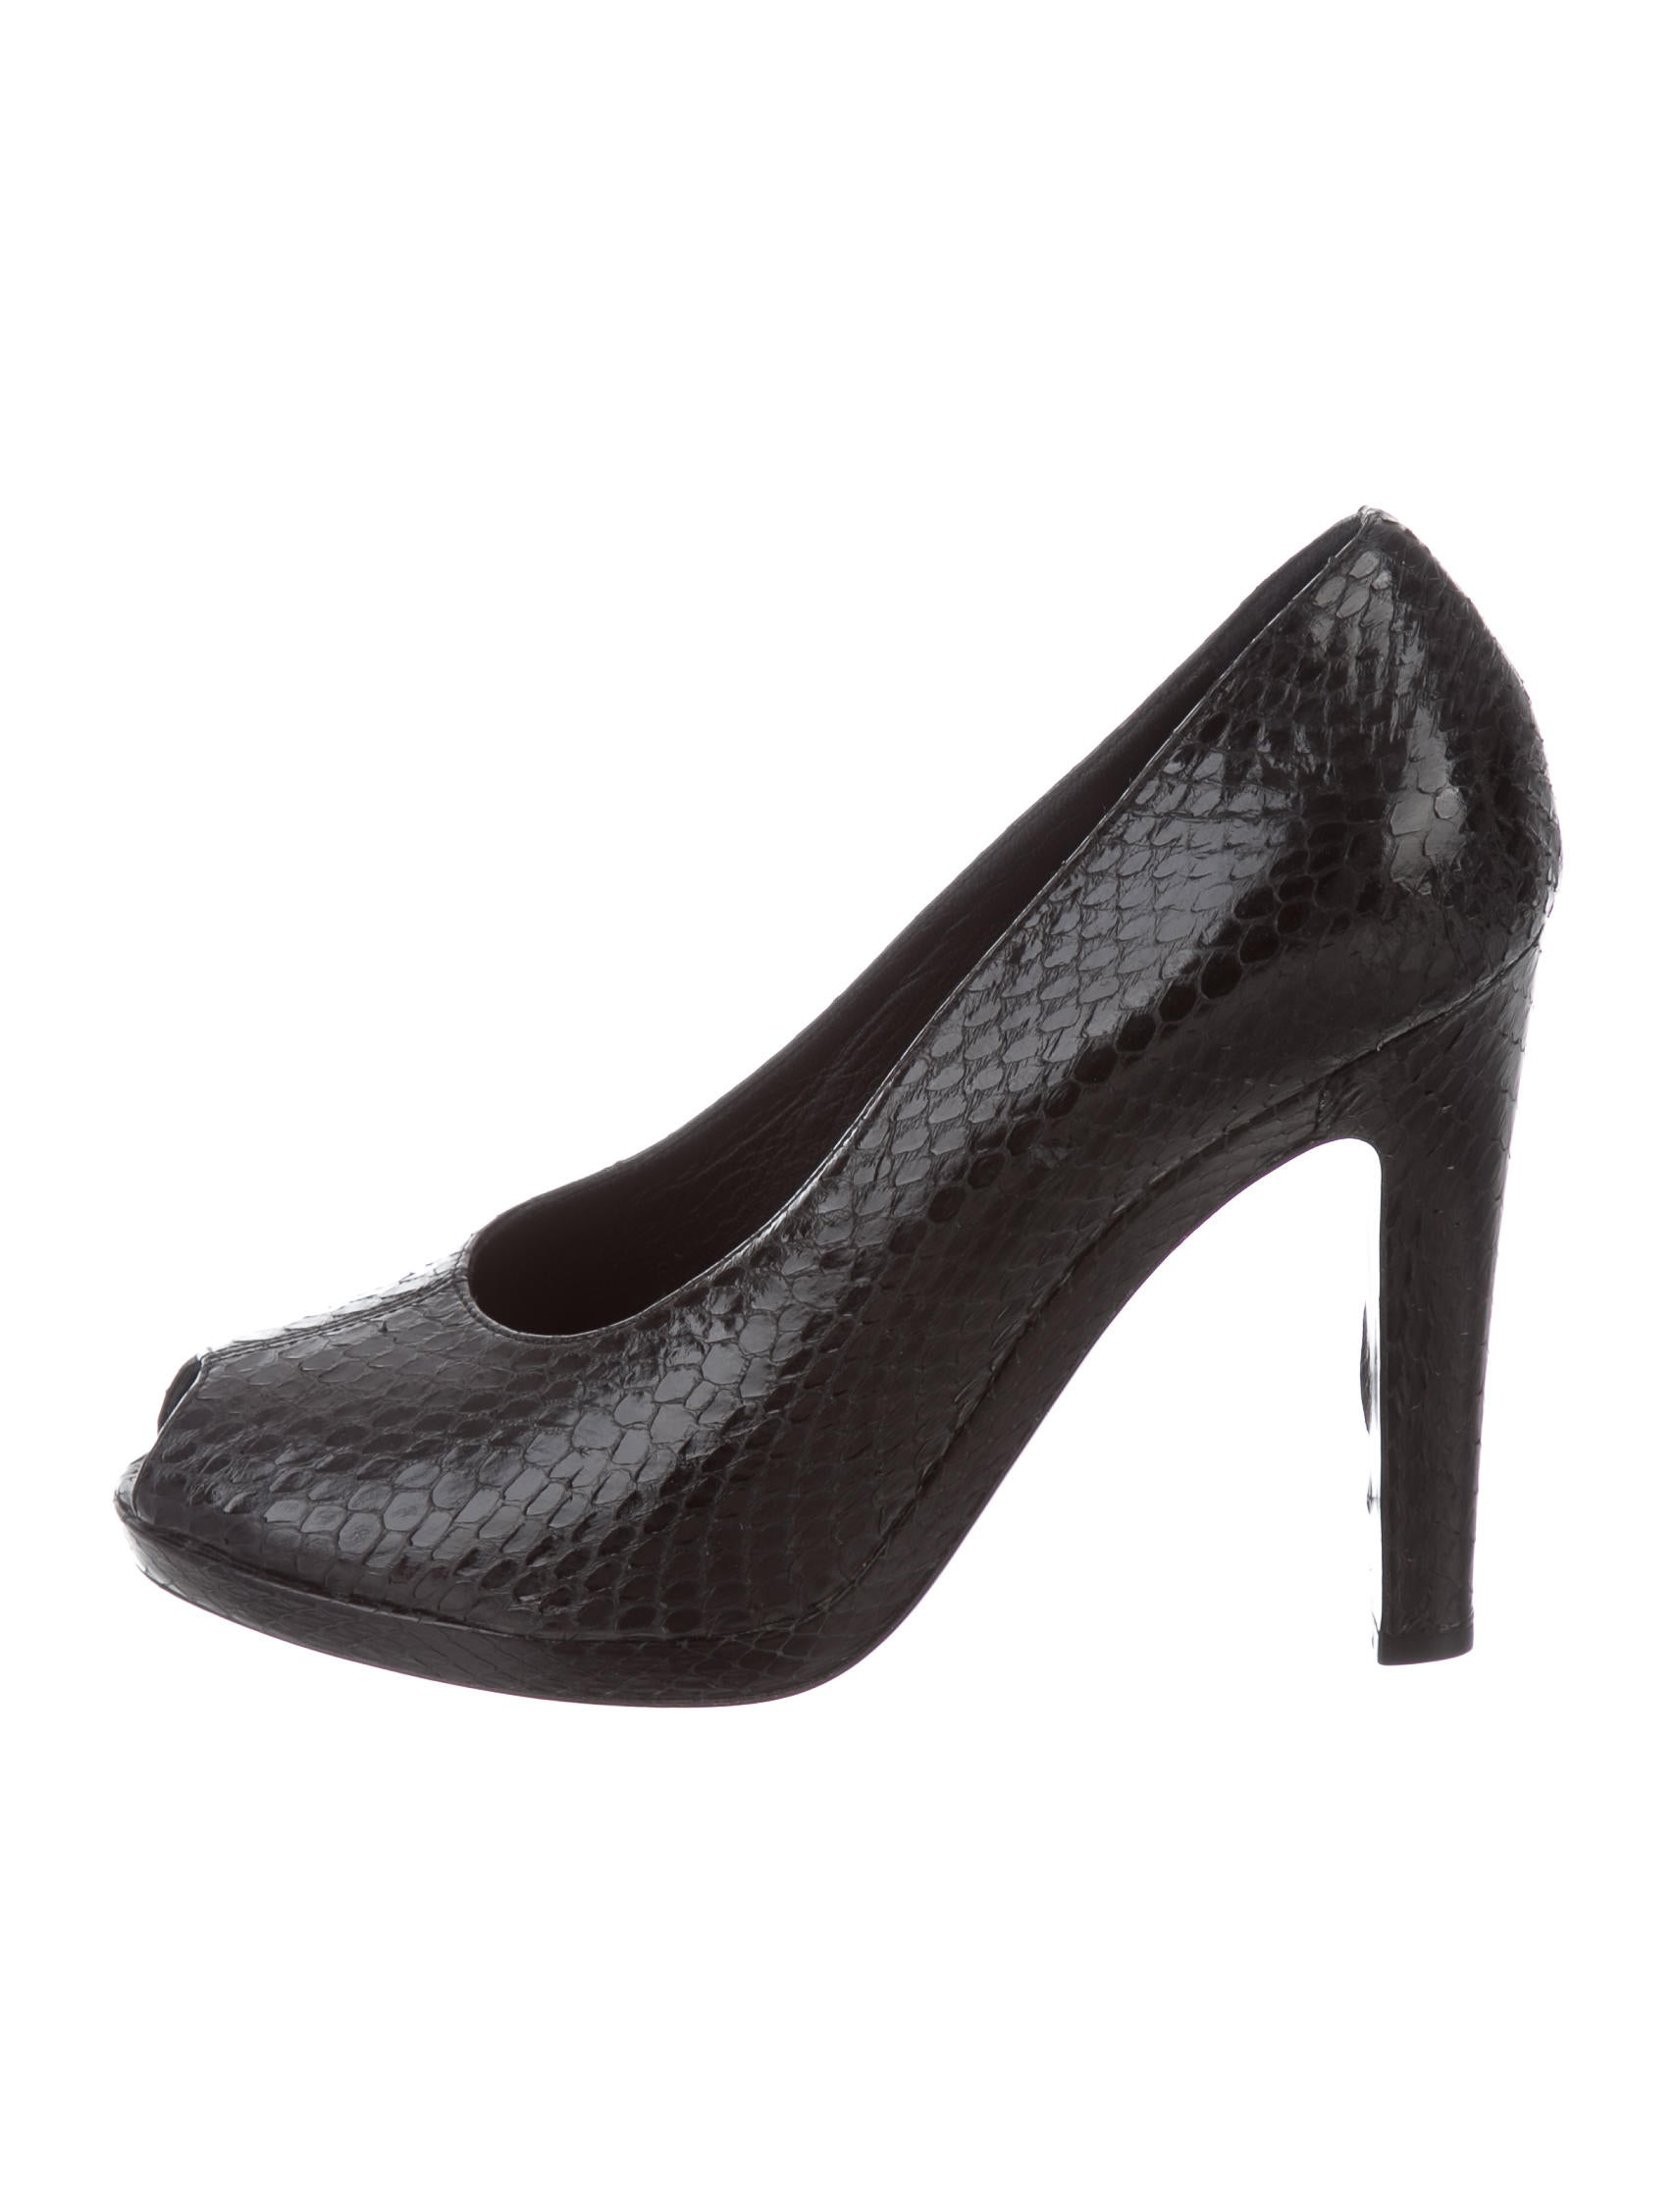 big discount cheap price clearance store online Jil Sander Python Peep-Toe Pumps Inexpensive online clearance reliable HEe2xP